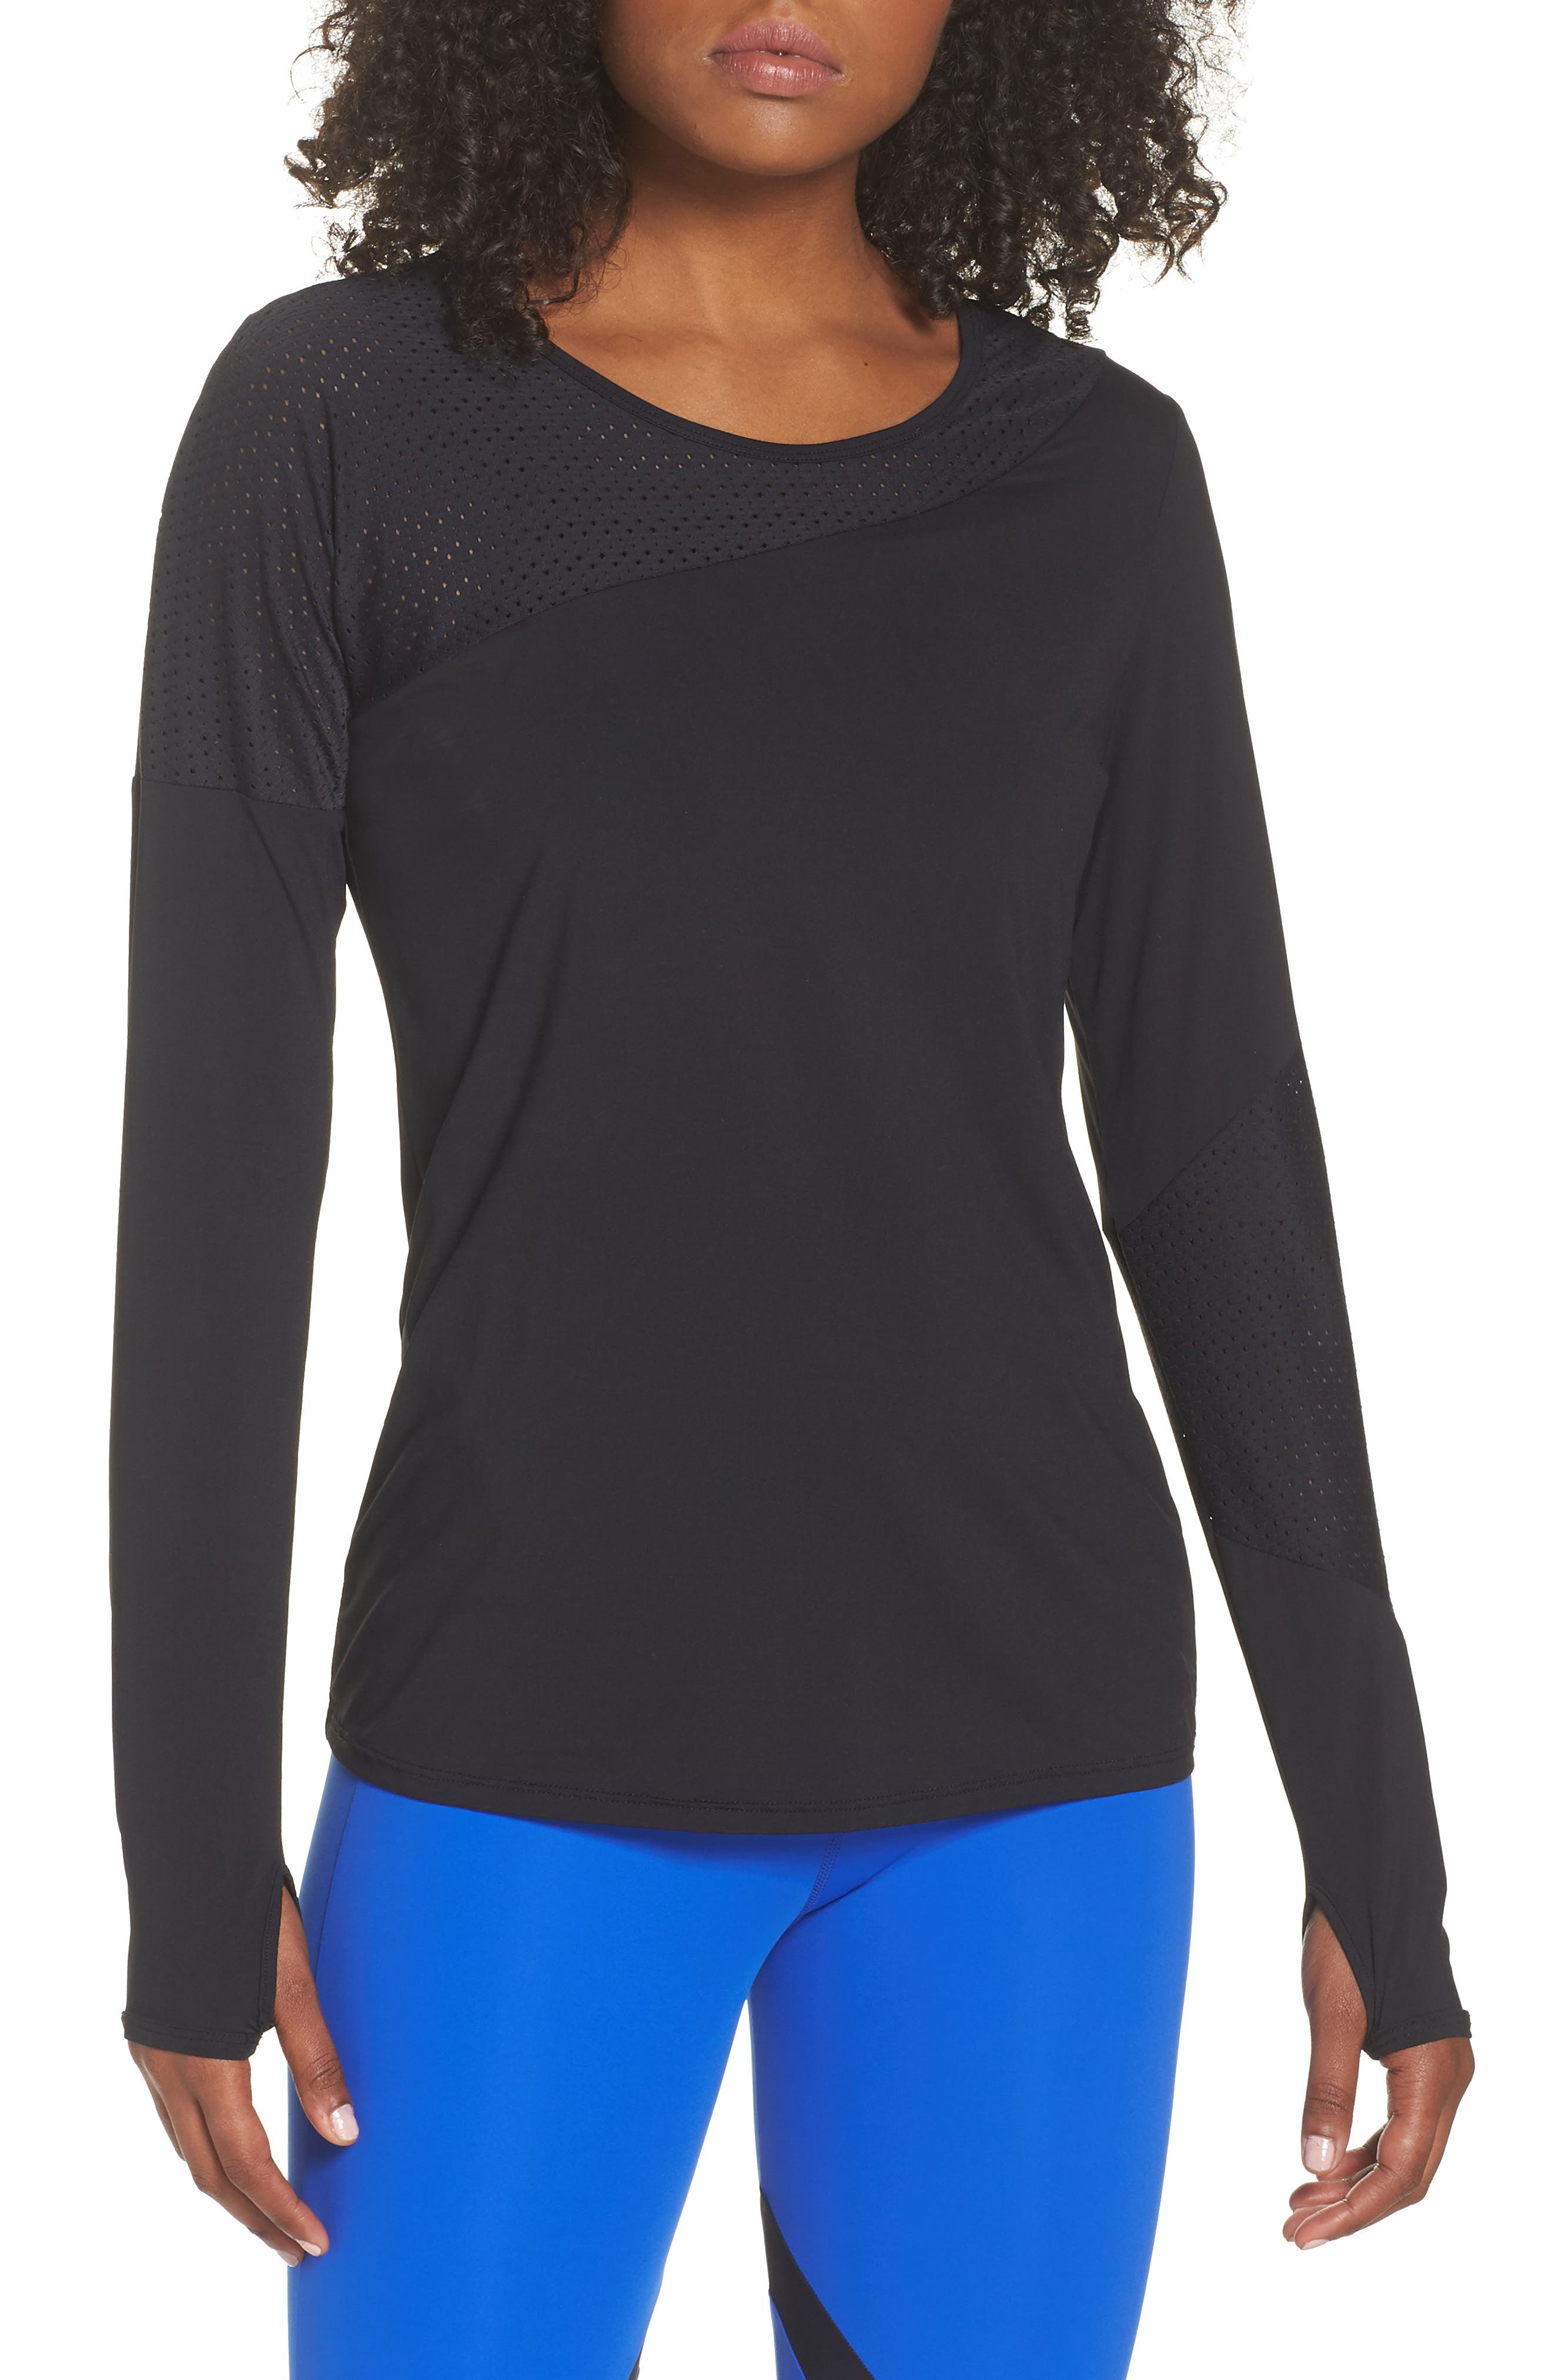 BoomBoom Athletica Easy Tunic,                         Main,                         color, BLACK